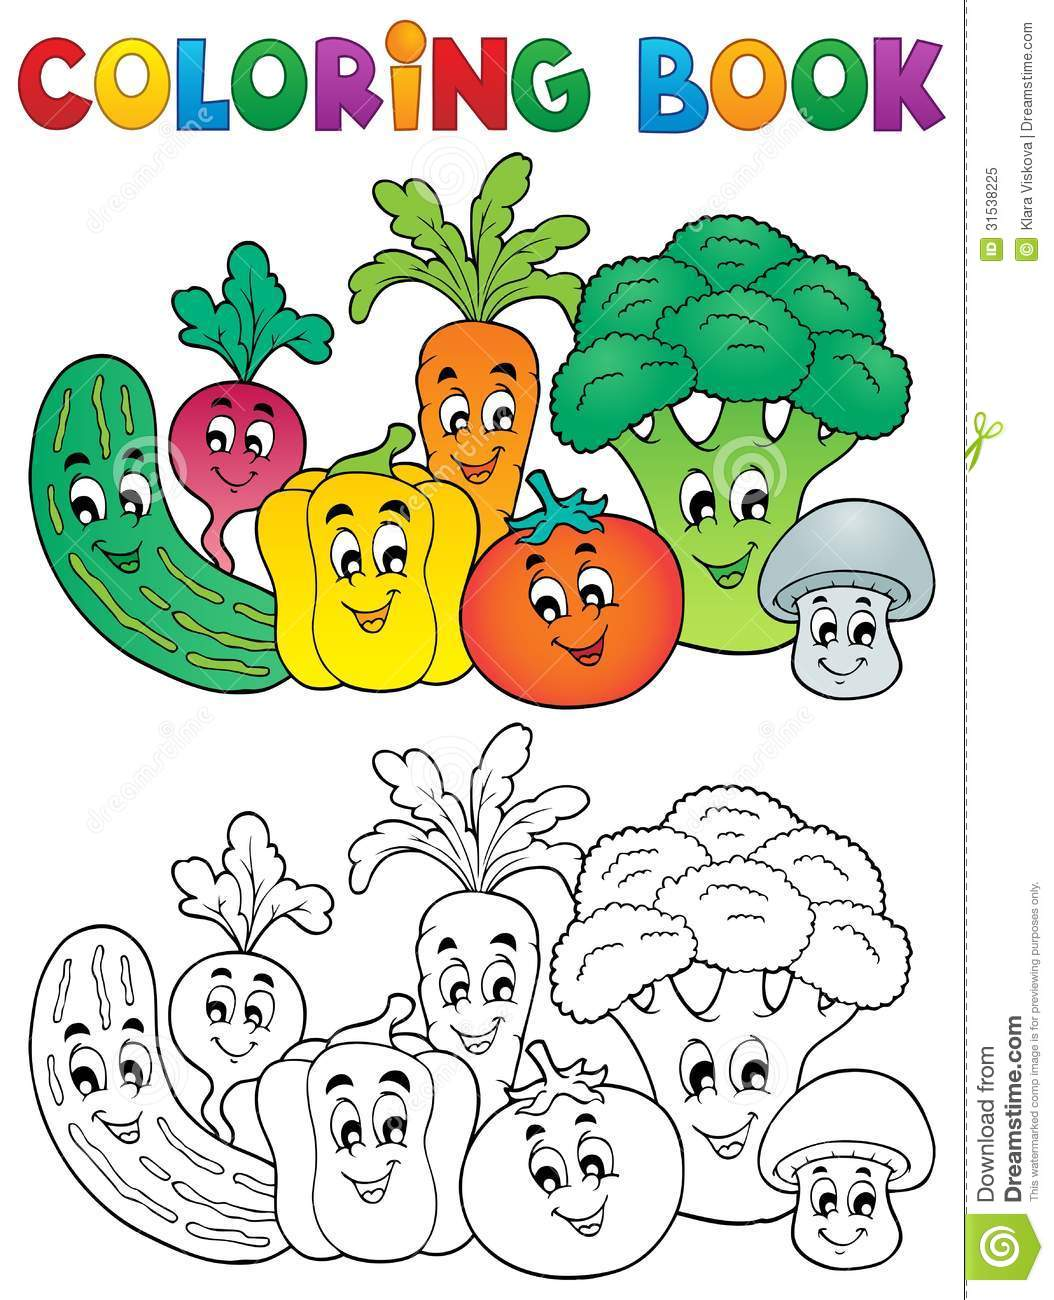 Coloring Book Vegetable Theme 2 Stock Vector